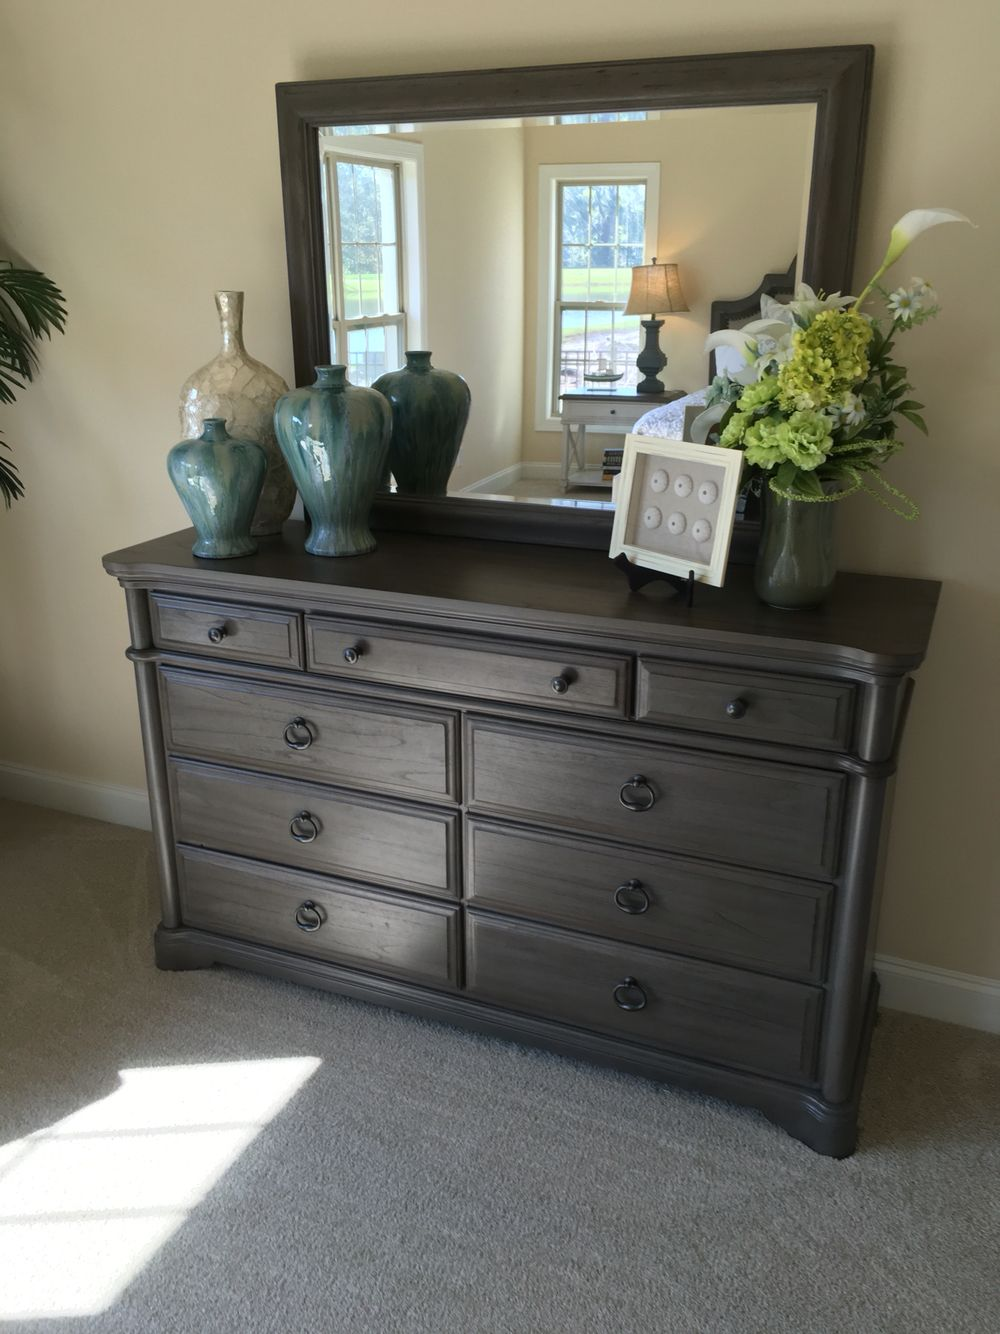 How to stage a dresser. Bedroom DressersBedroom Dresser StylingDresser Top  DecorDresser ...